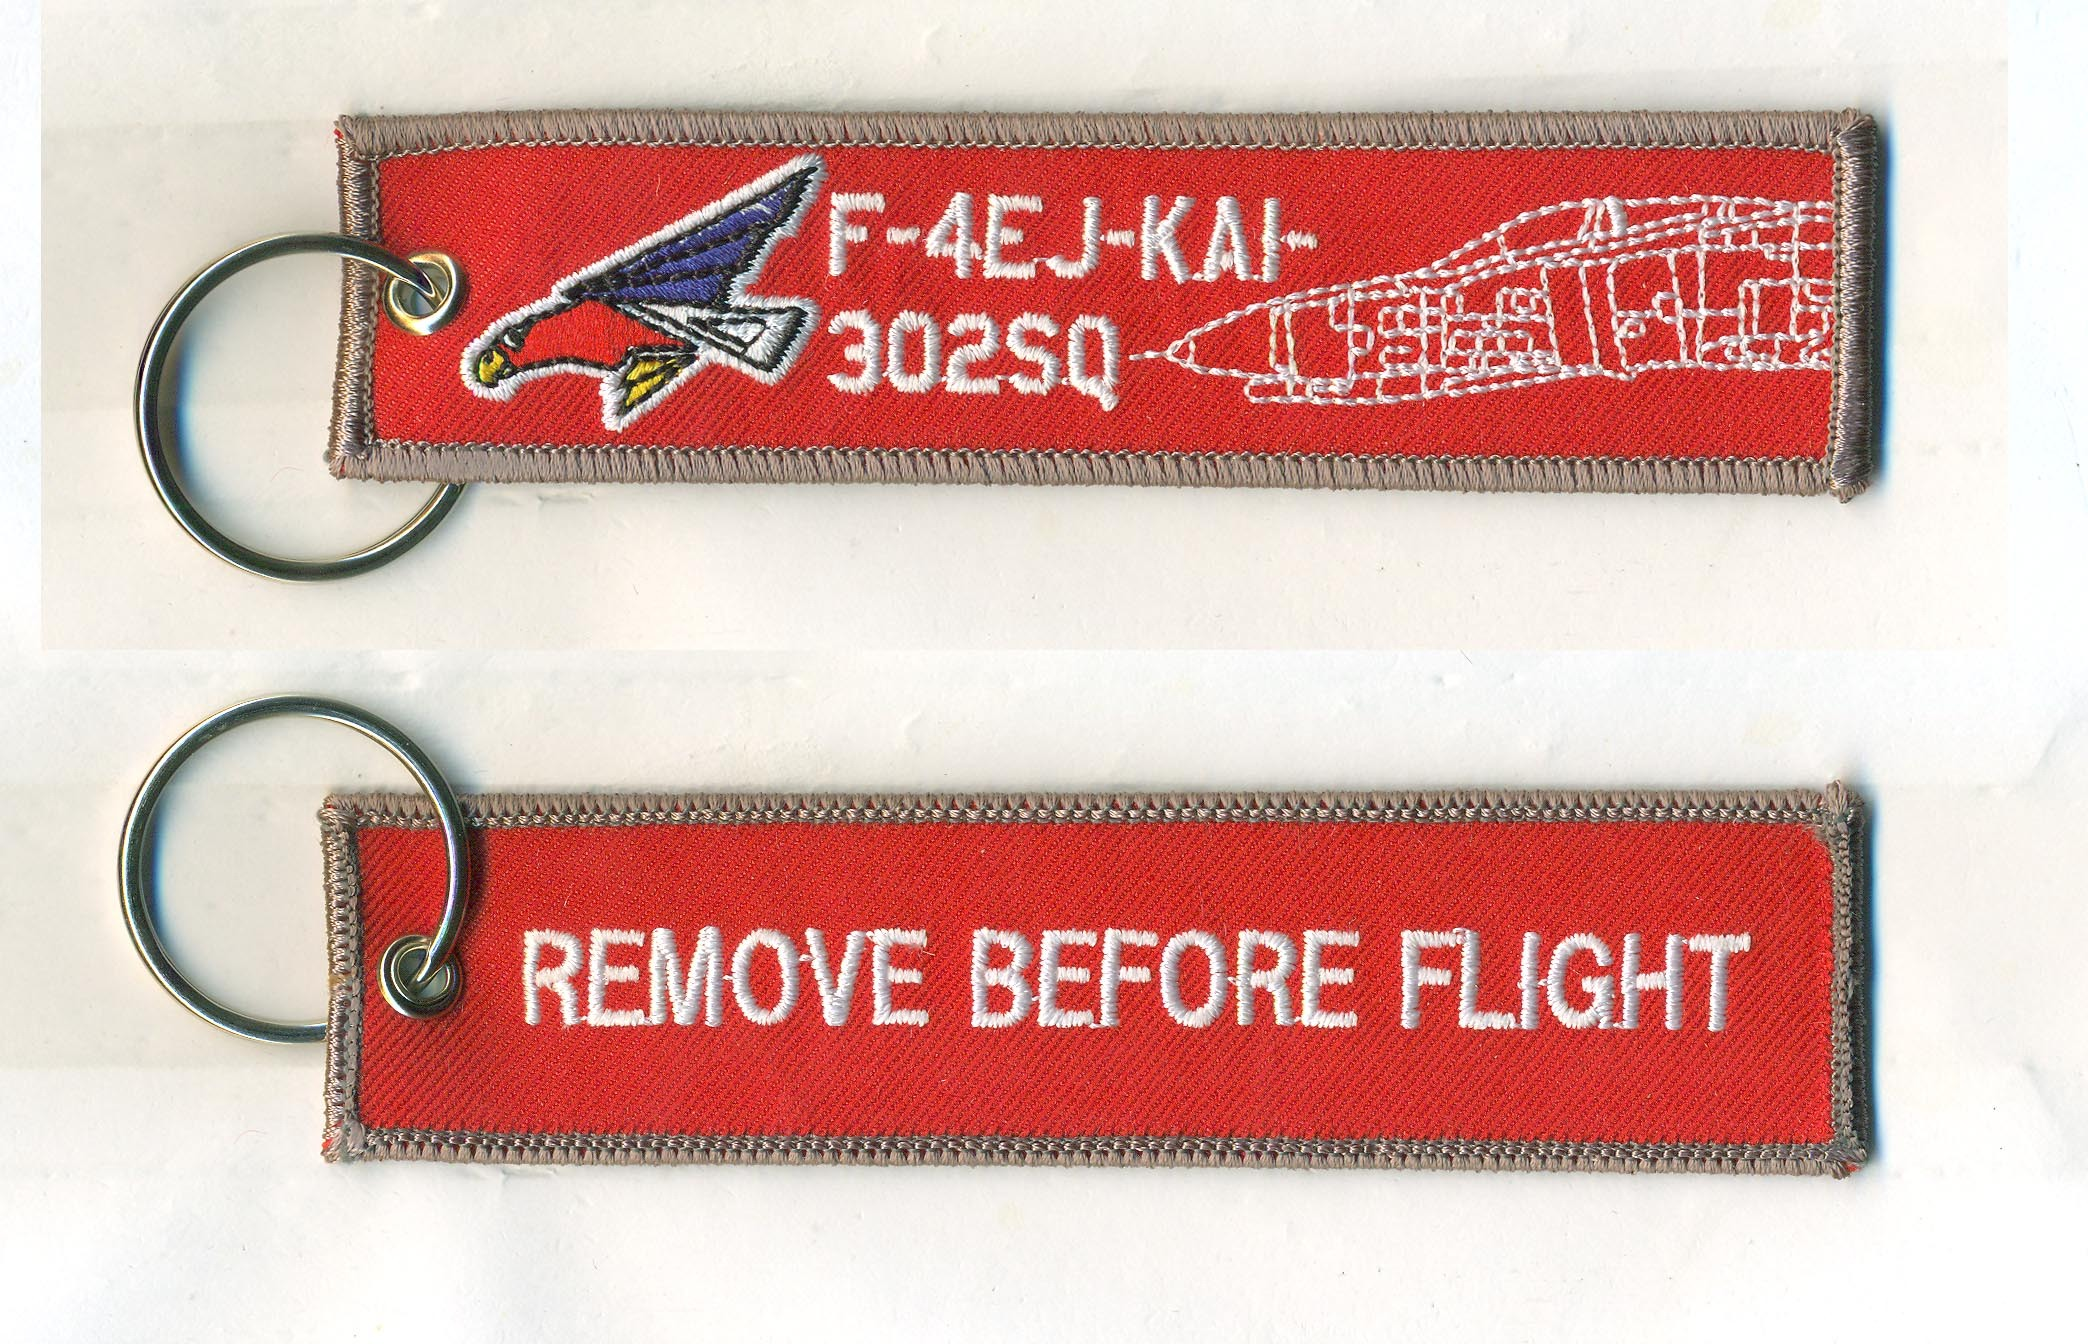 REMOVE BEFORE FLIGHTキーホルダー/F-4EJ-KAI-302SQ